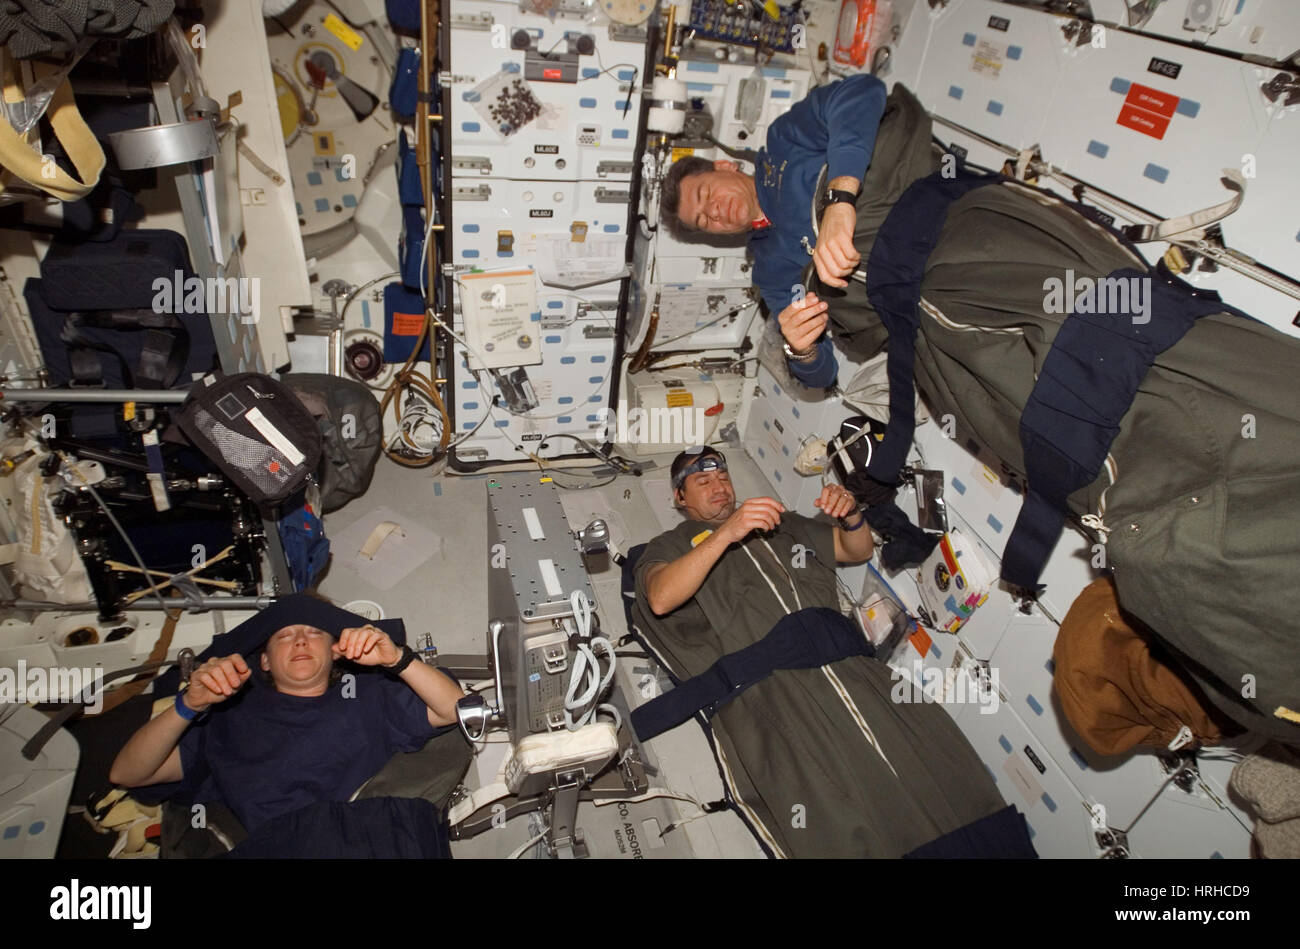 STS-120, Astronauts Sleeping, 2007 - Stock Image